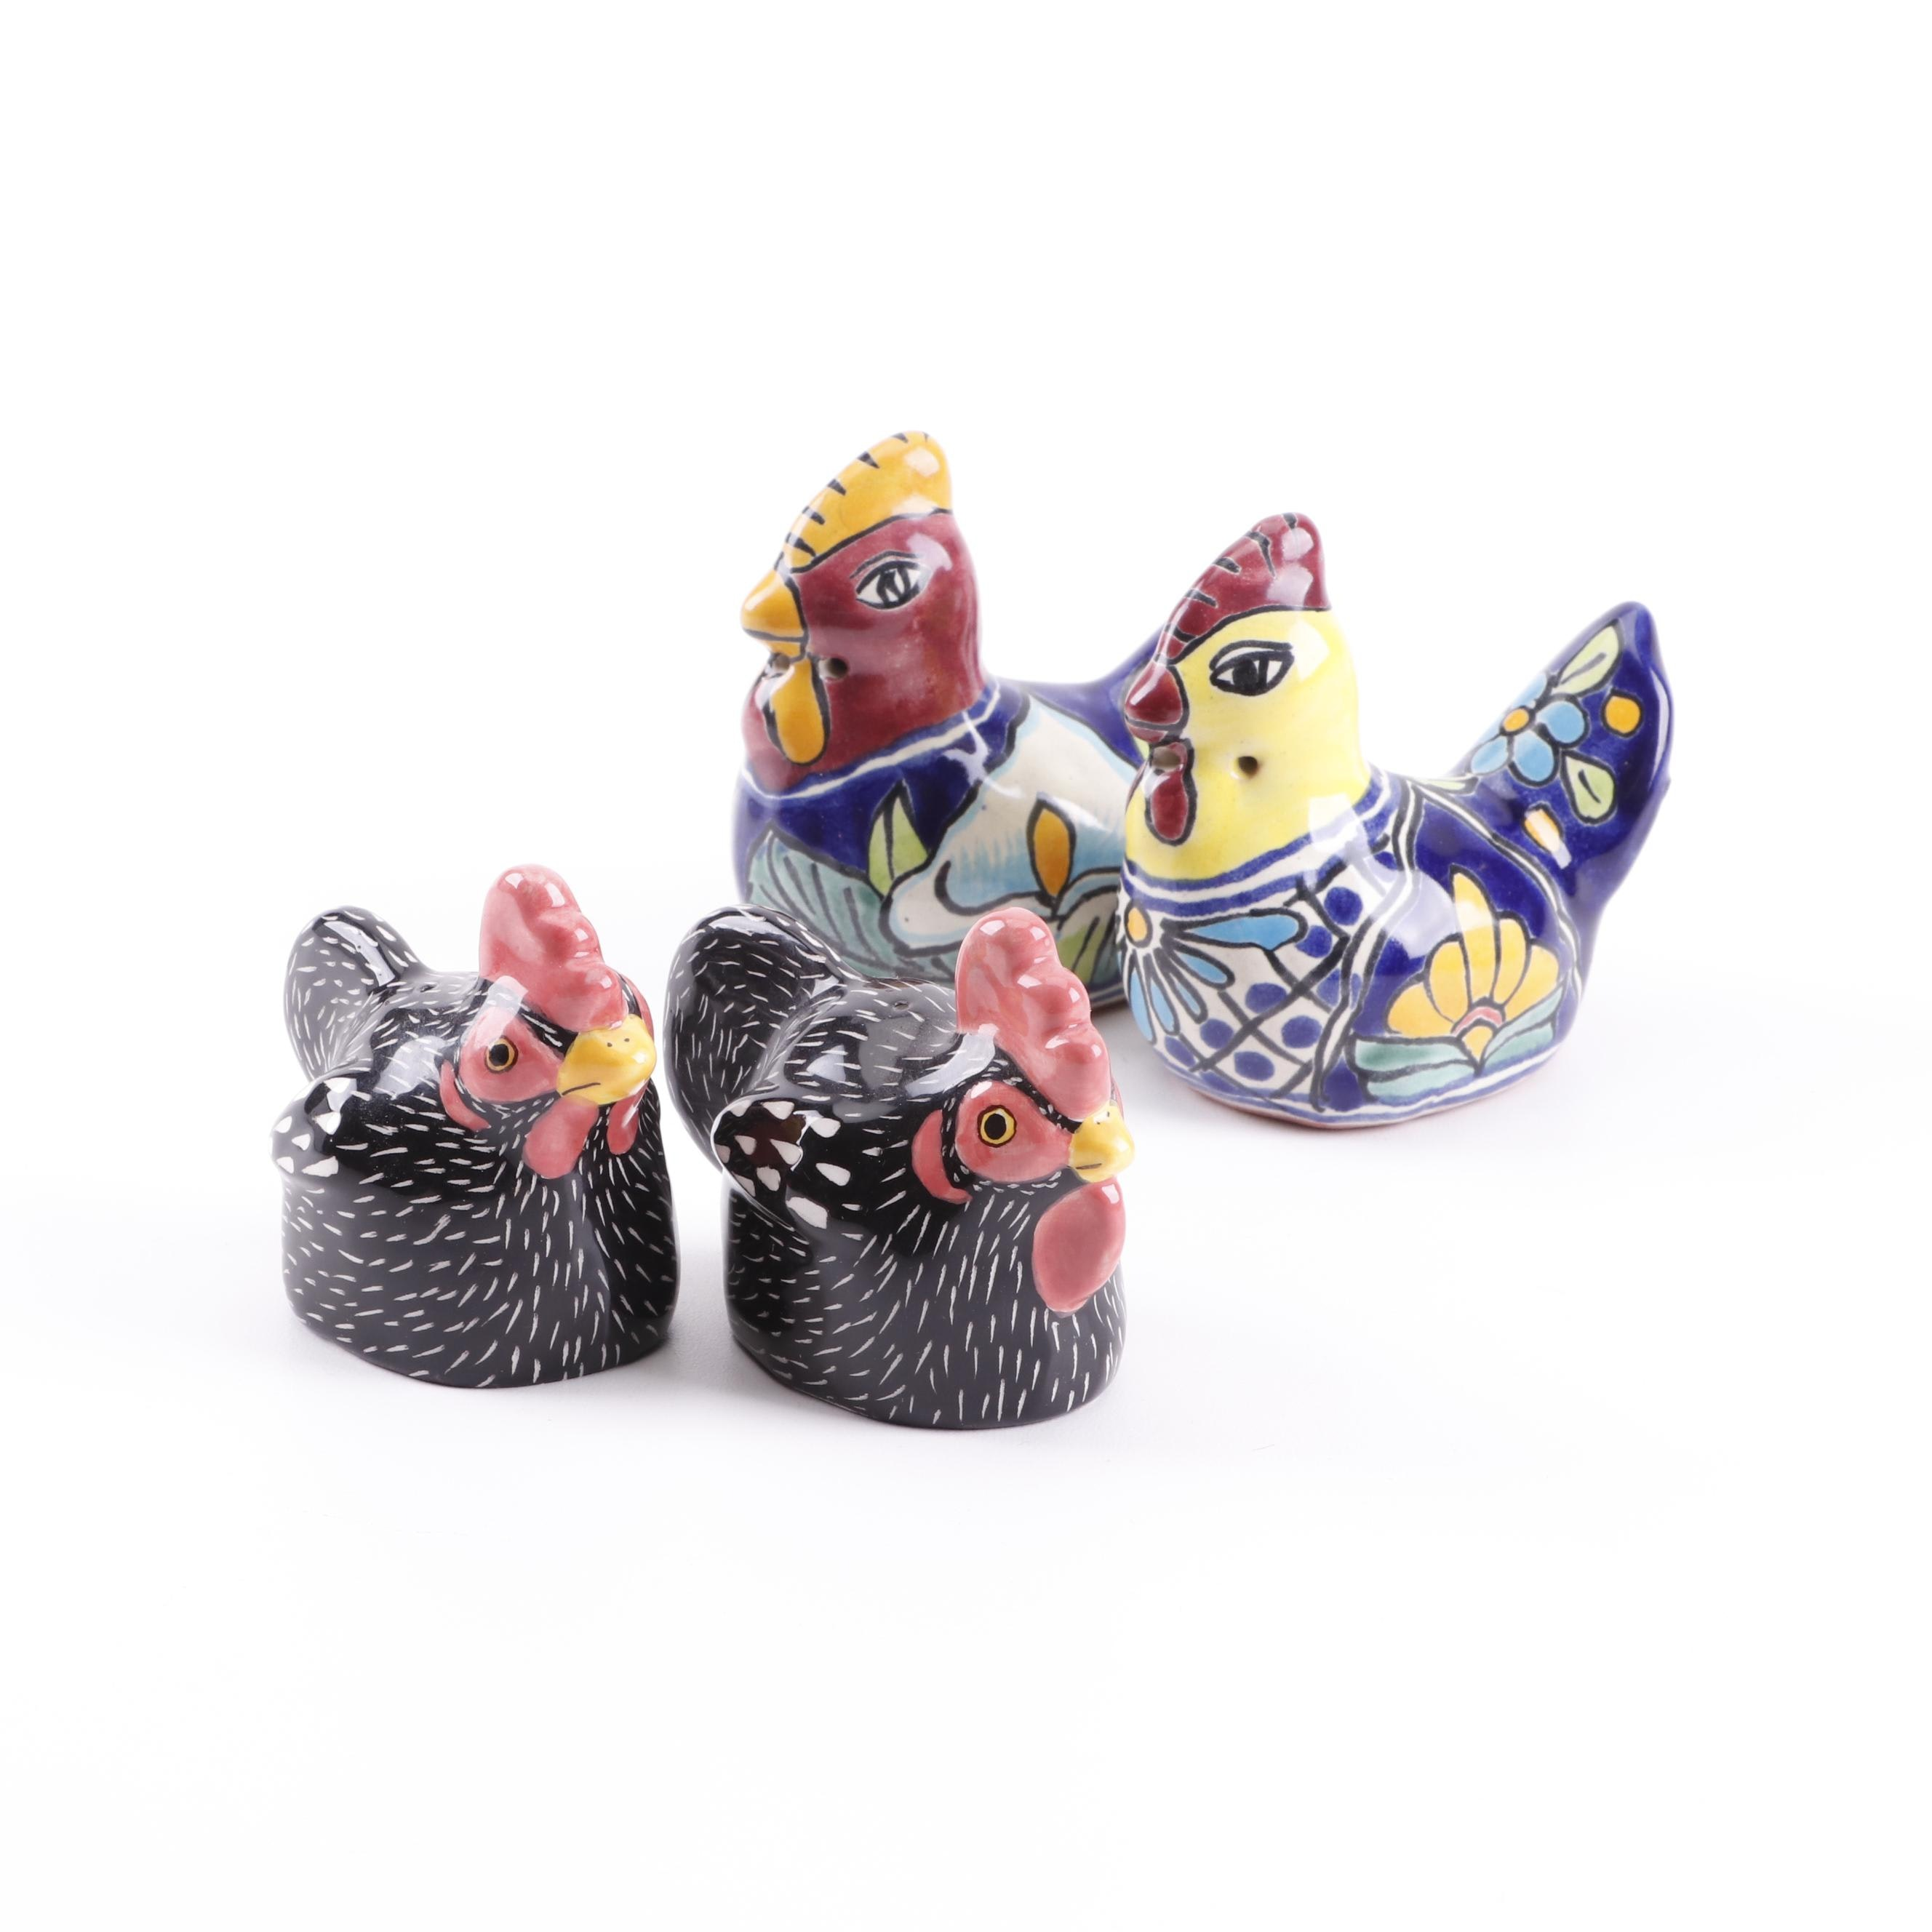 Hand-Painted Hen Salt and Pepper Shakers featuring Vazquez